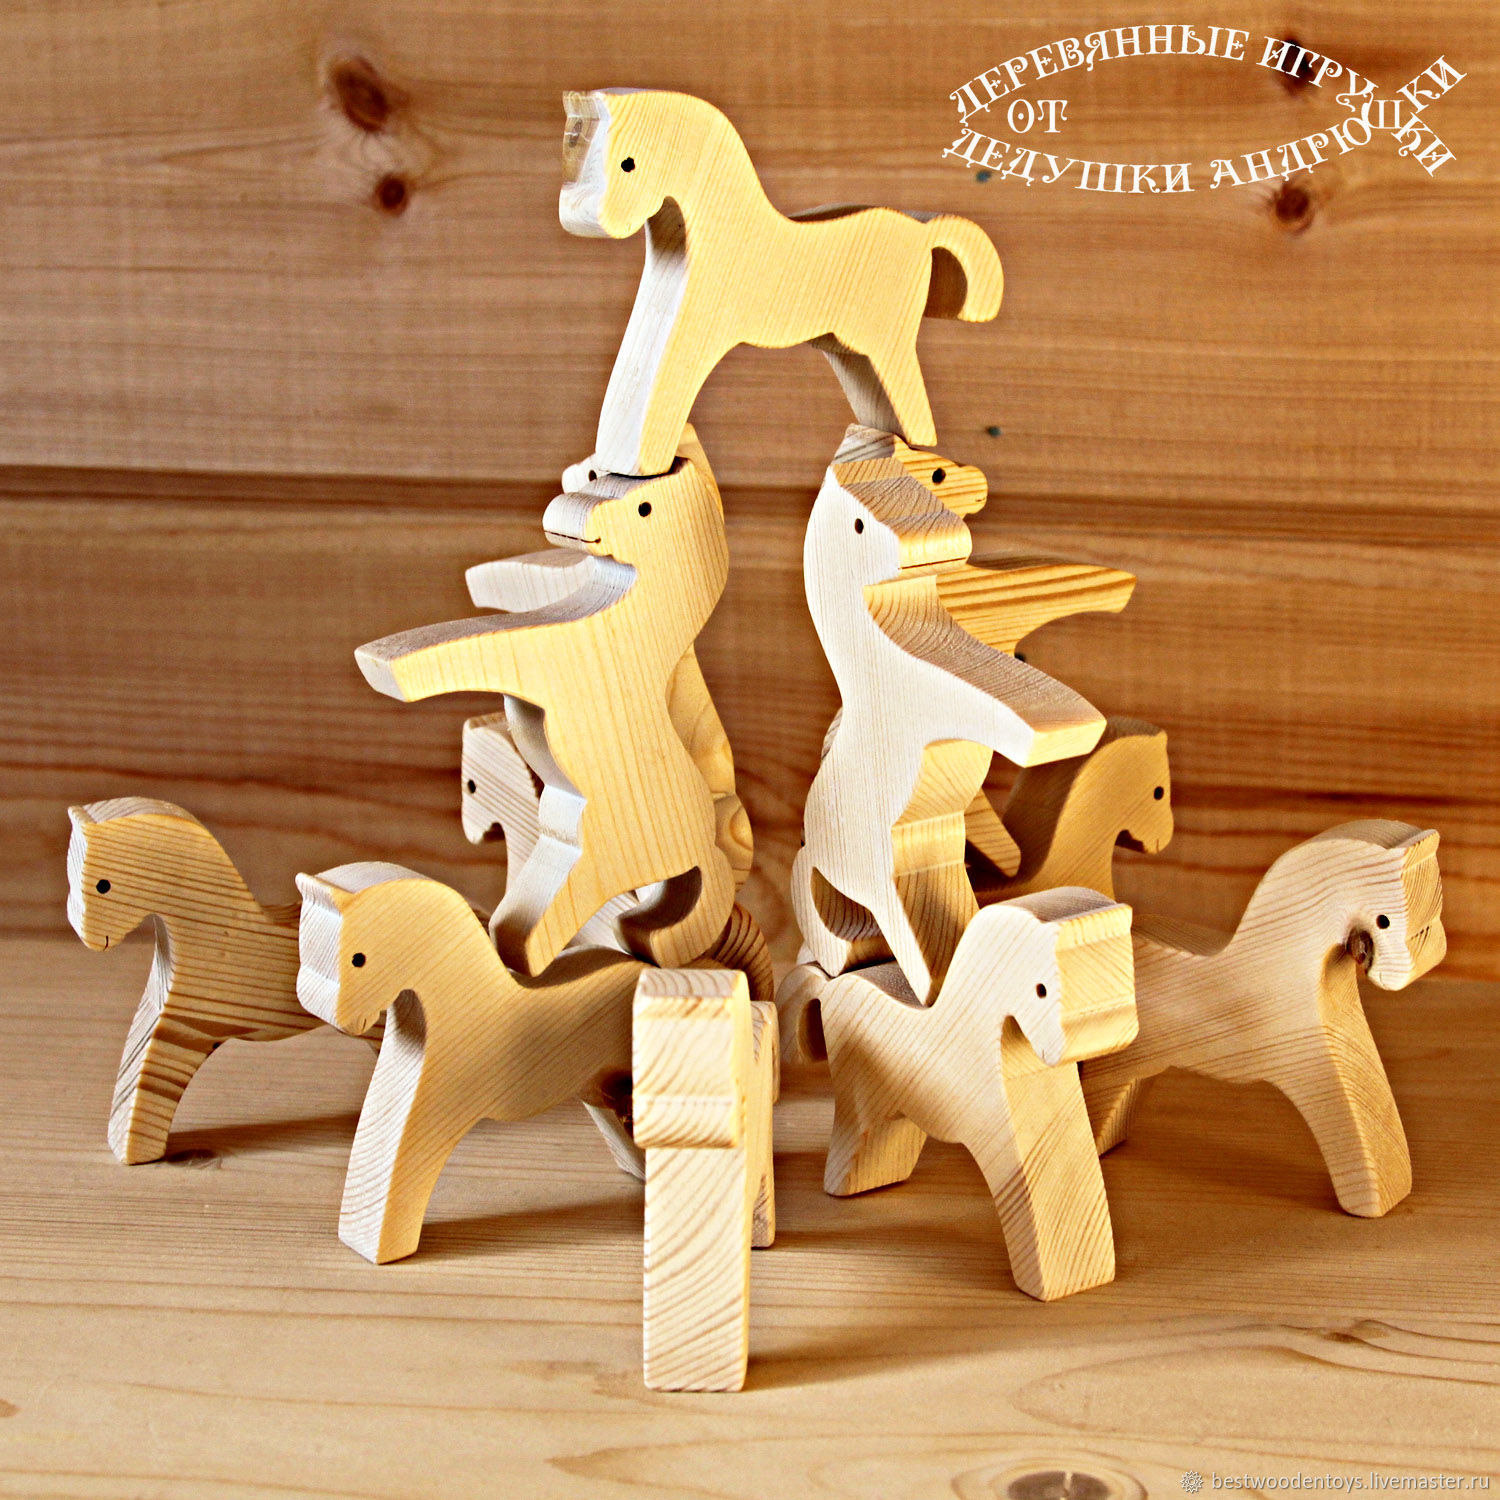 Toy designer - Saw `Circus horses`. Wooden toys from Grandpa Andrewski.